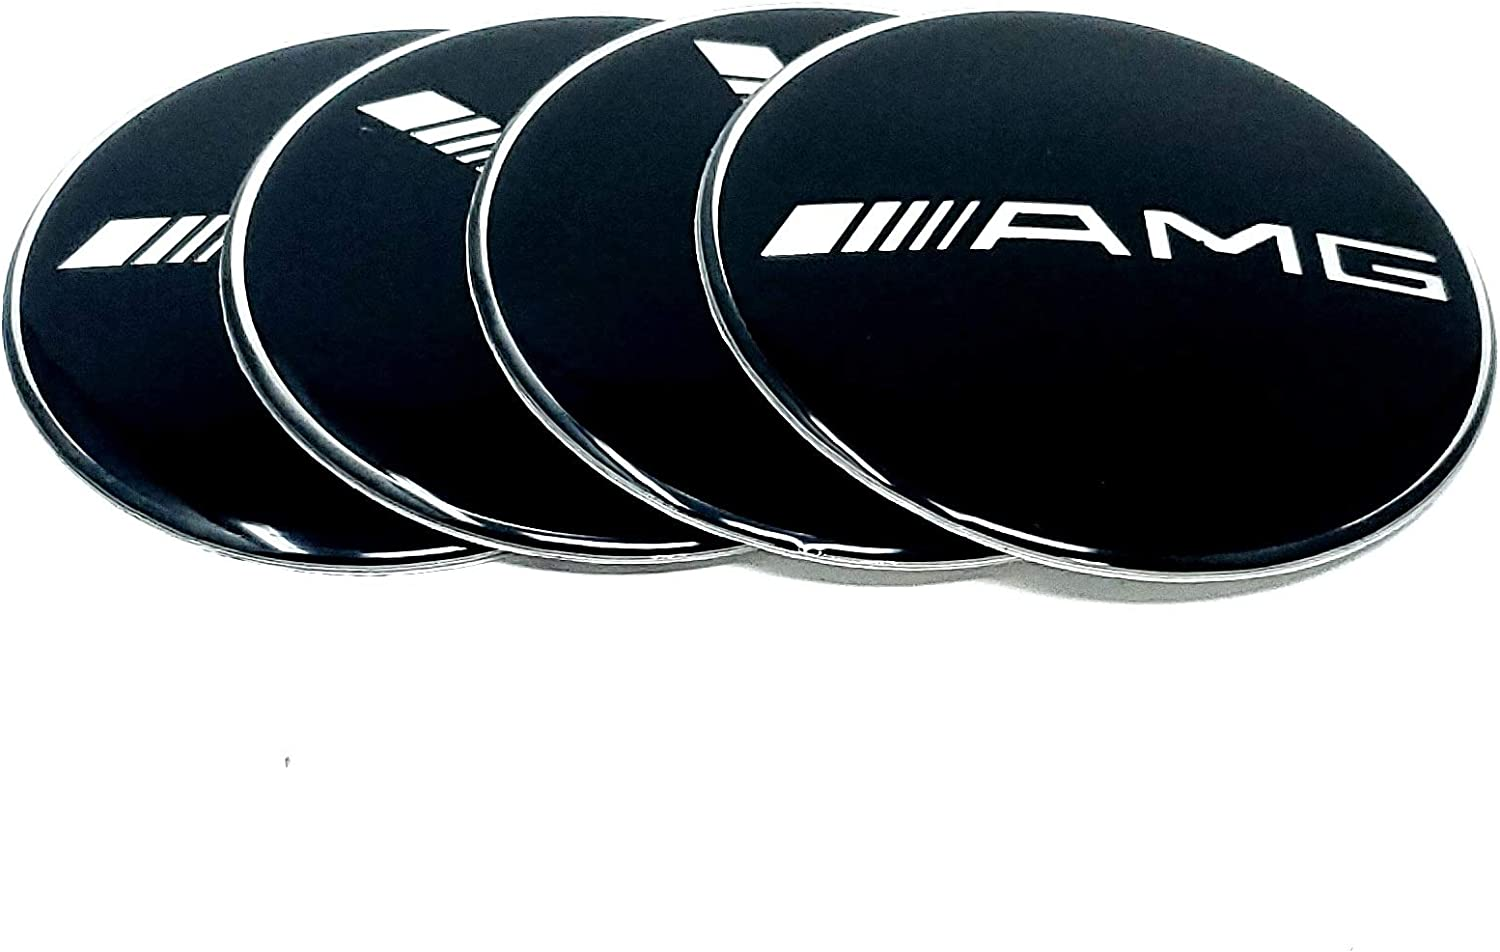 RED 2.20 inch 56mm Hub Cap Stickers For MAZDA 3 4 5 6 SPEED CX ETC Wheel Center Mag Rim Hubcap Emblem Logo Sticker PLEASE MEASURE Before Purchase for Best Fitment RENGVO Pack of 4